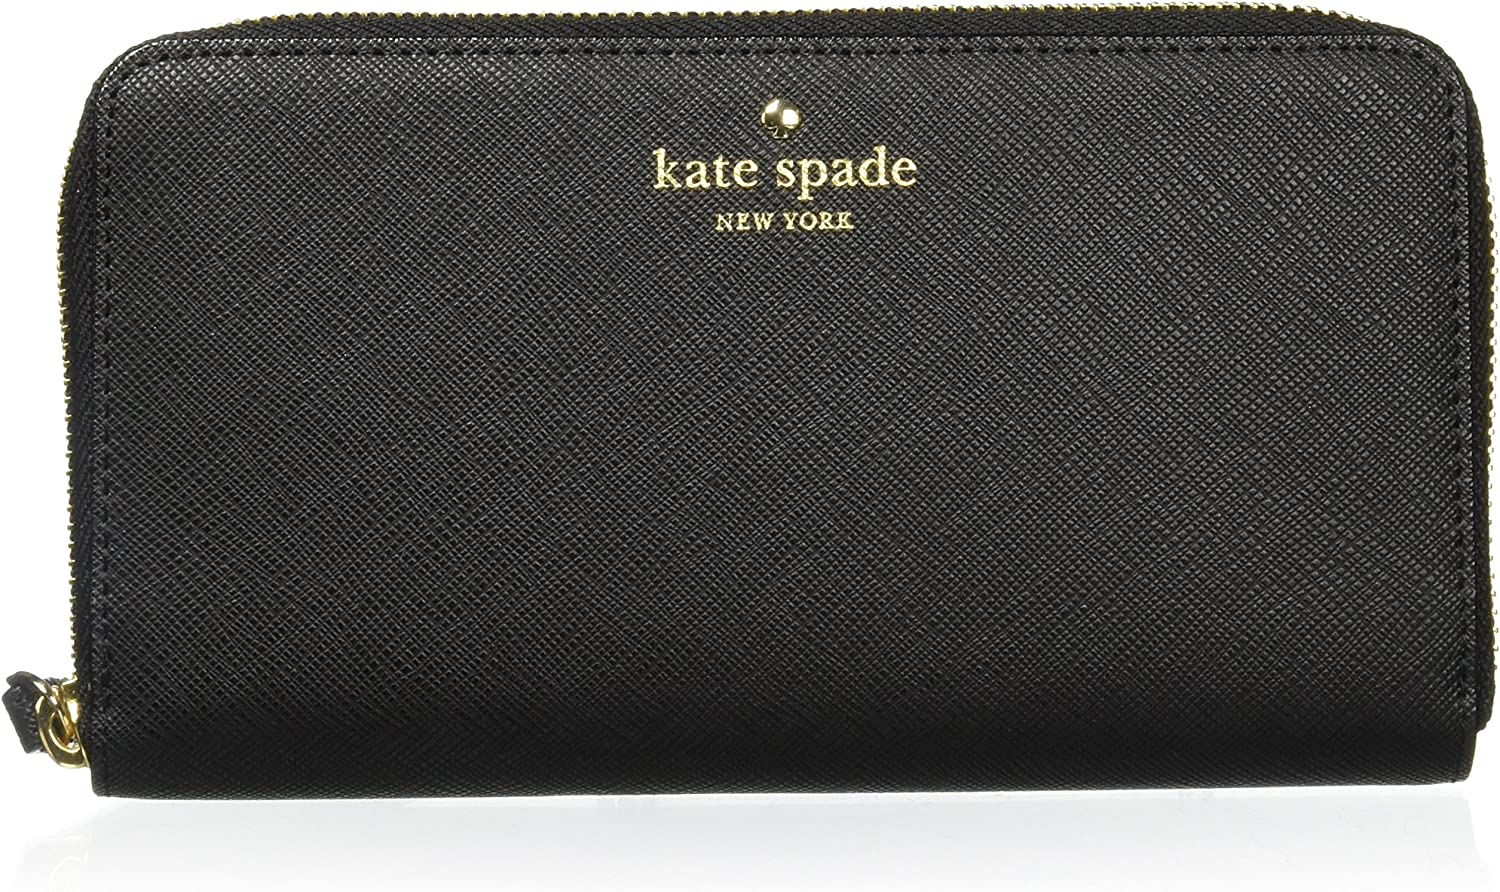 Kate Spade Pouch Black Zip Wallet Wristlet Leather Organiser Phone Purse